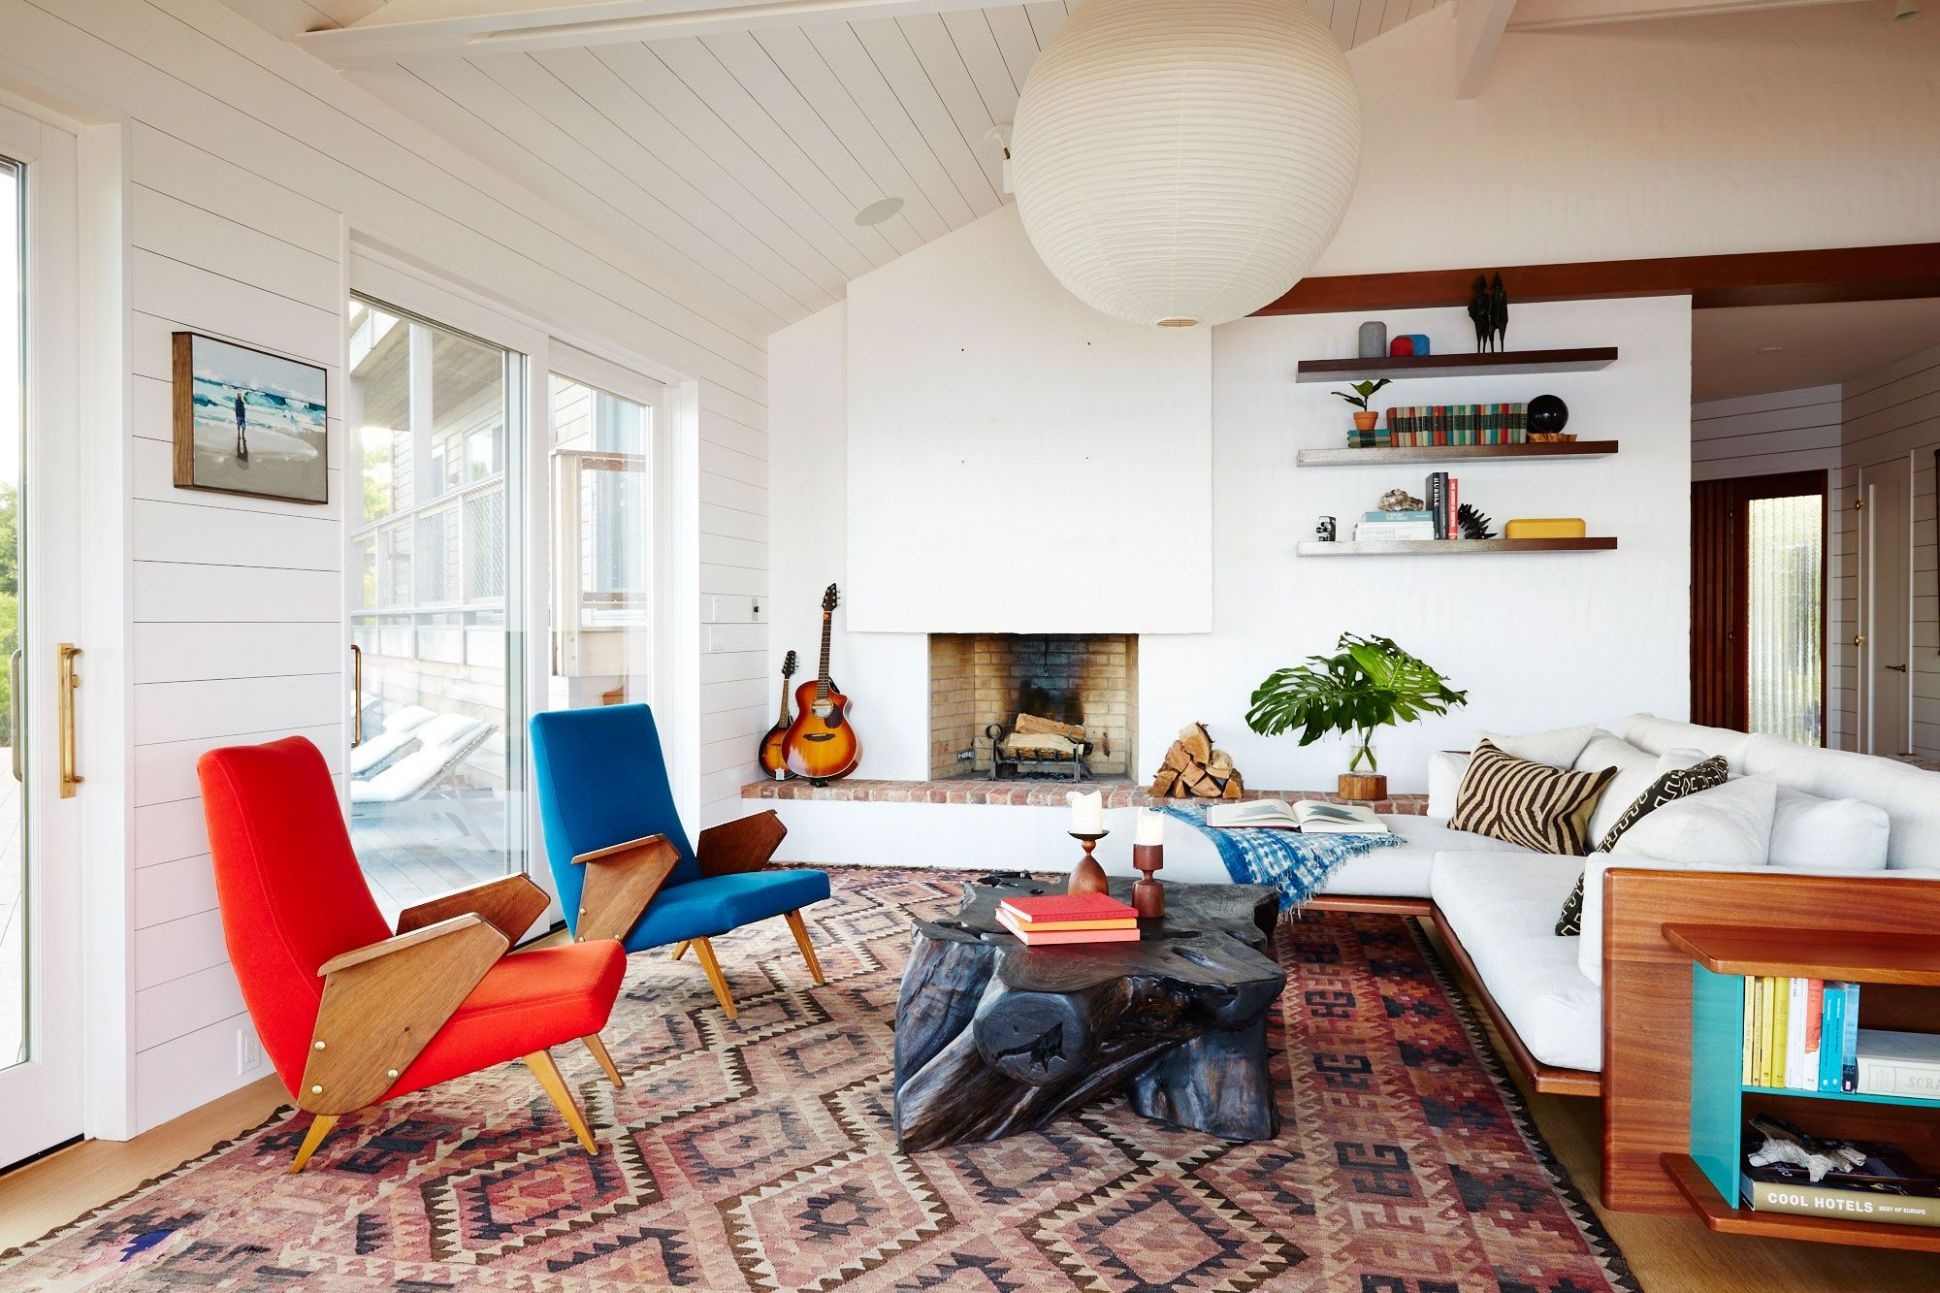 10 Stylish Family Room Design Ideas - Easy Decorating Tips for ..